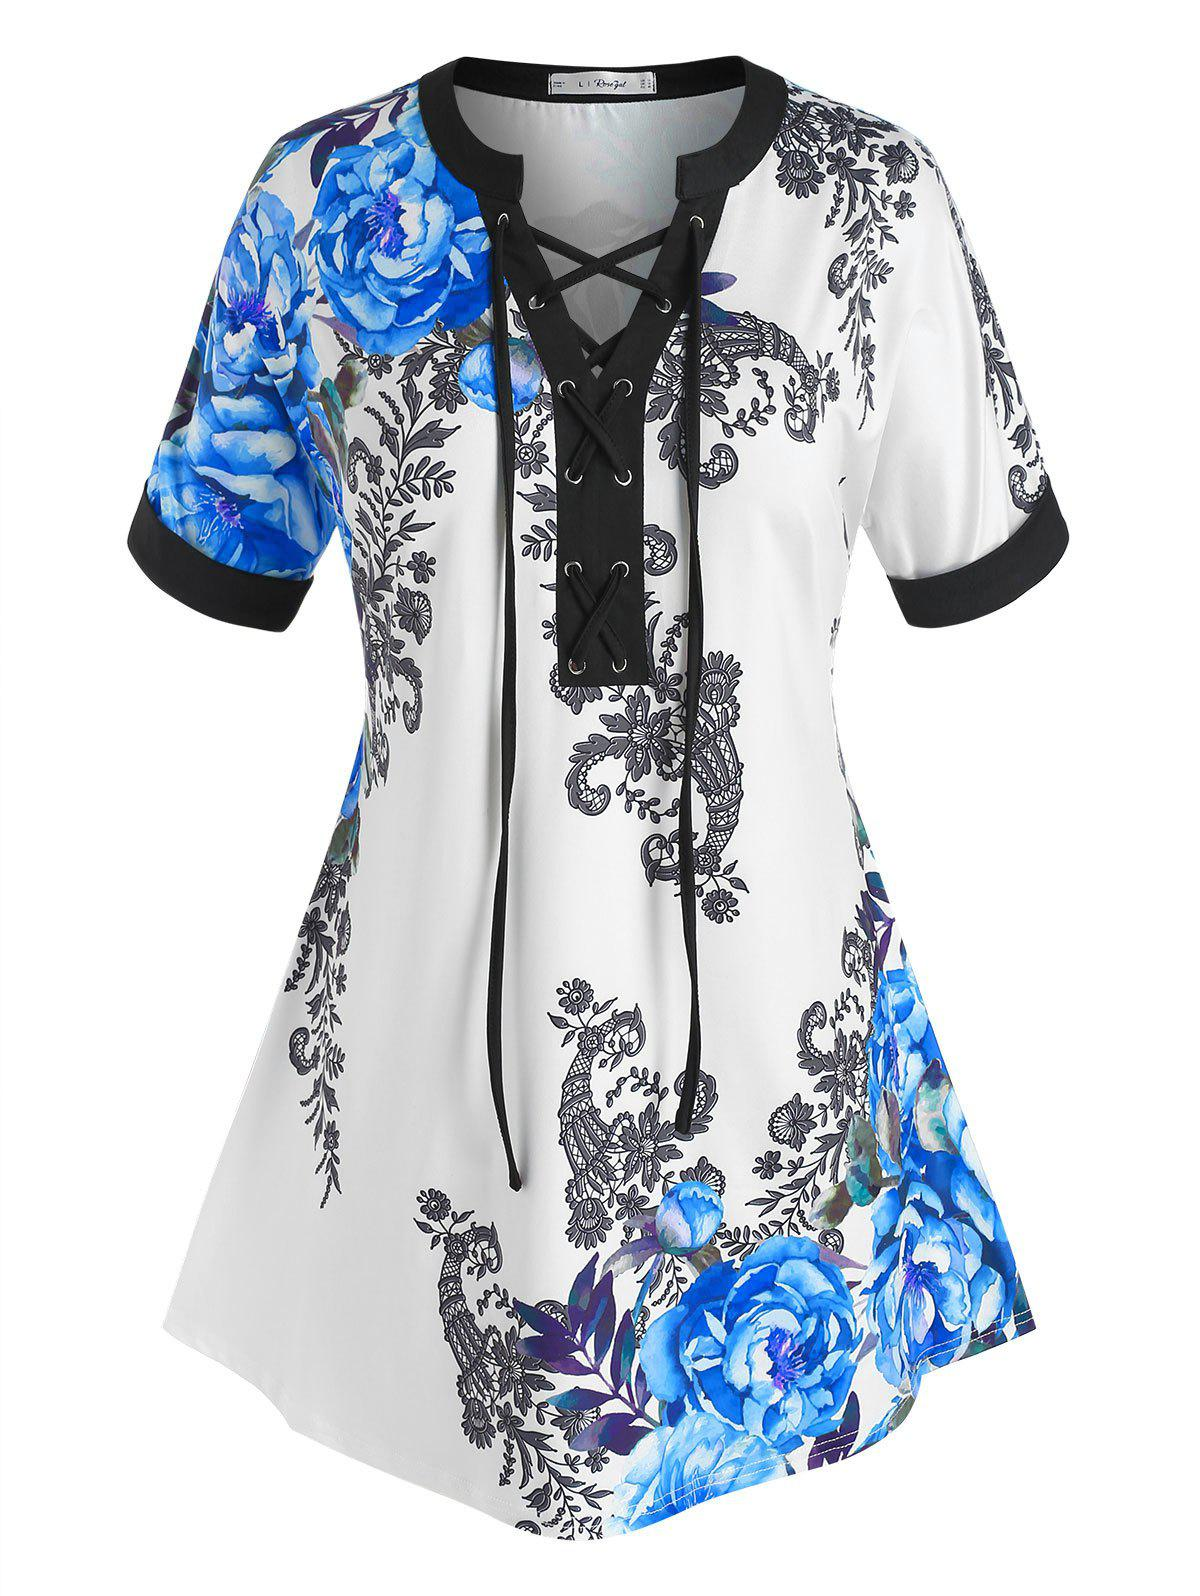 Plus Size Flower Print Lace-up Short Sleeve Tee - BLUE 3X